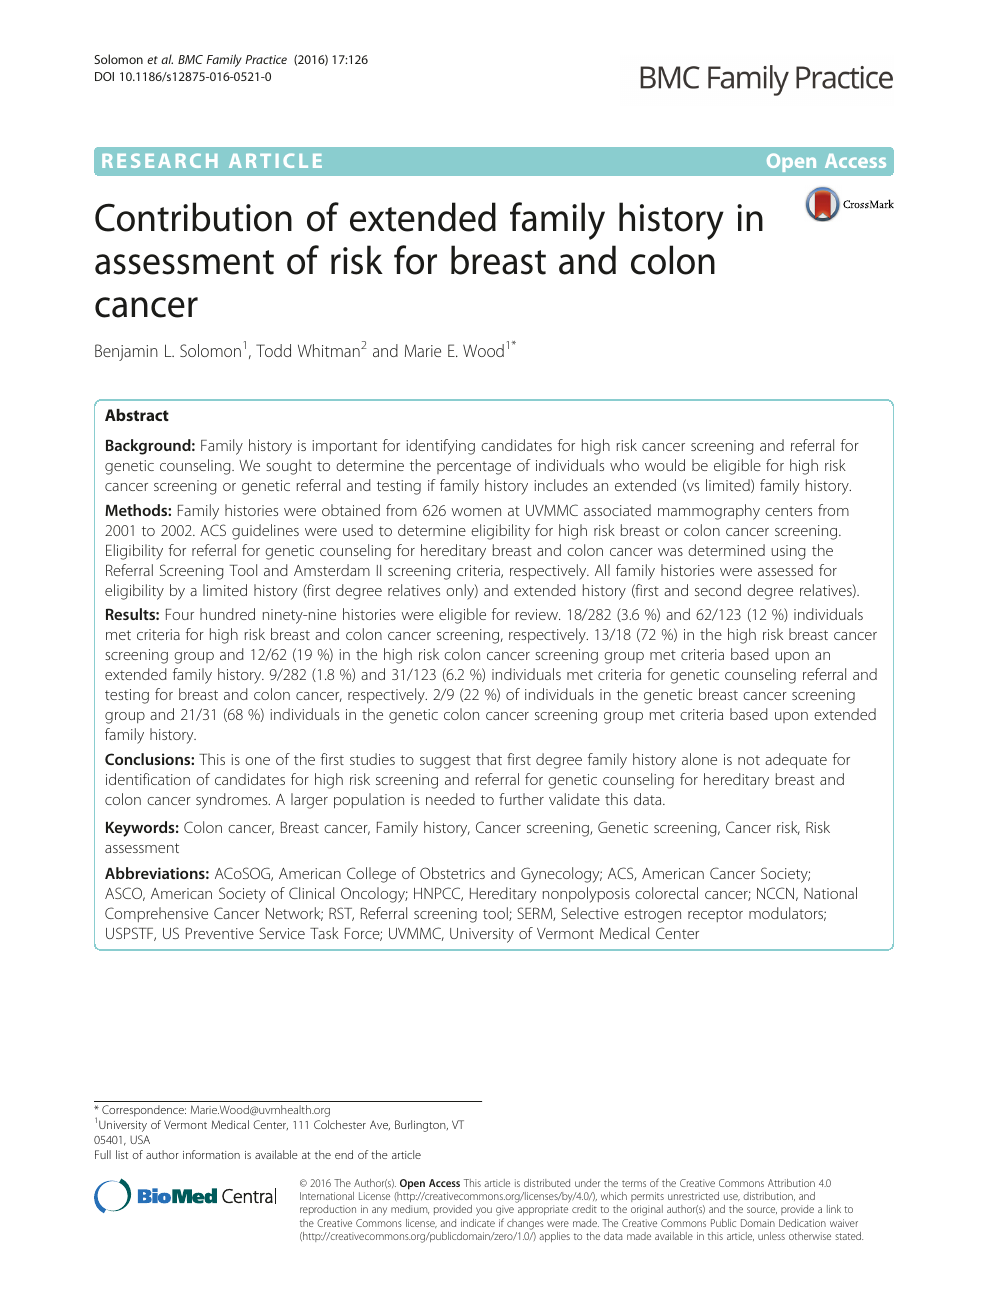 Contribution Of Extended Family History In Assessment Of Risk For Breast And Colon Cancer Topic Of Research Paper In Health Sciences Download Scholarly Article Pdf And Read For Free On Cyberleninka